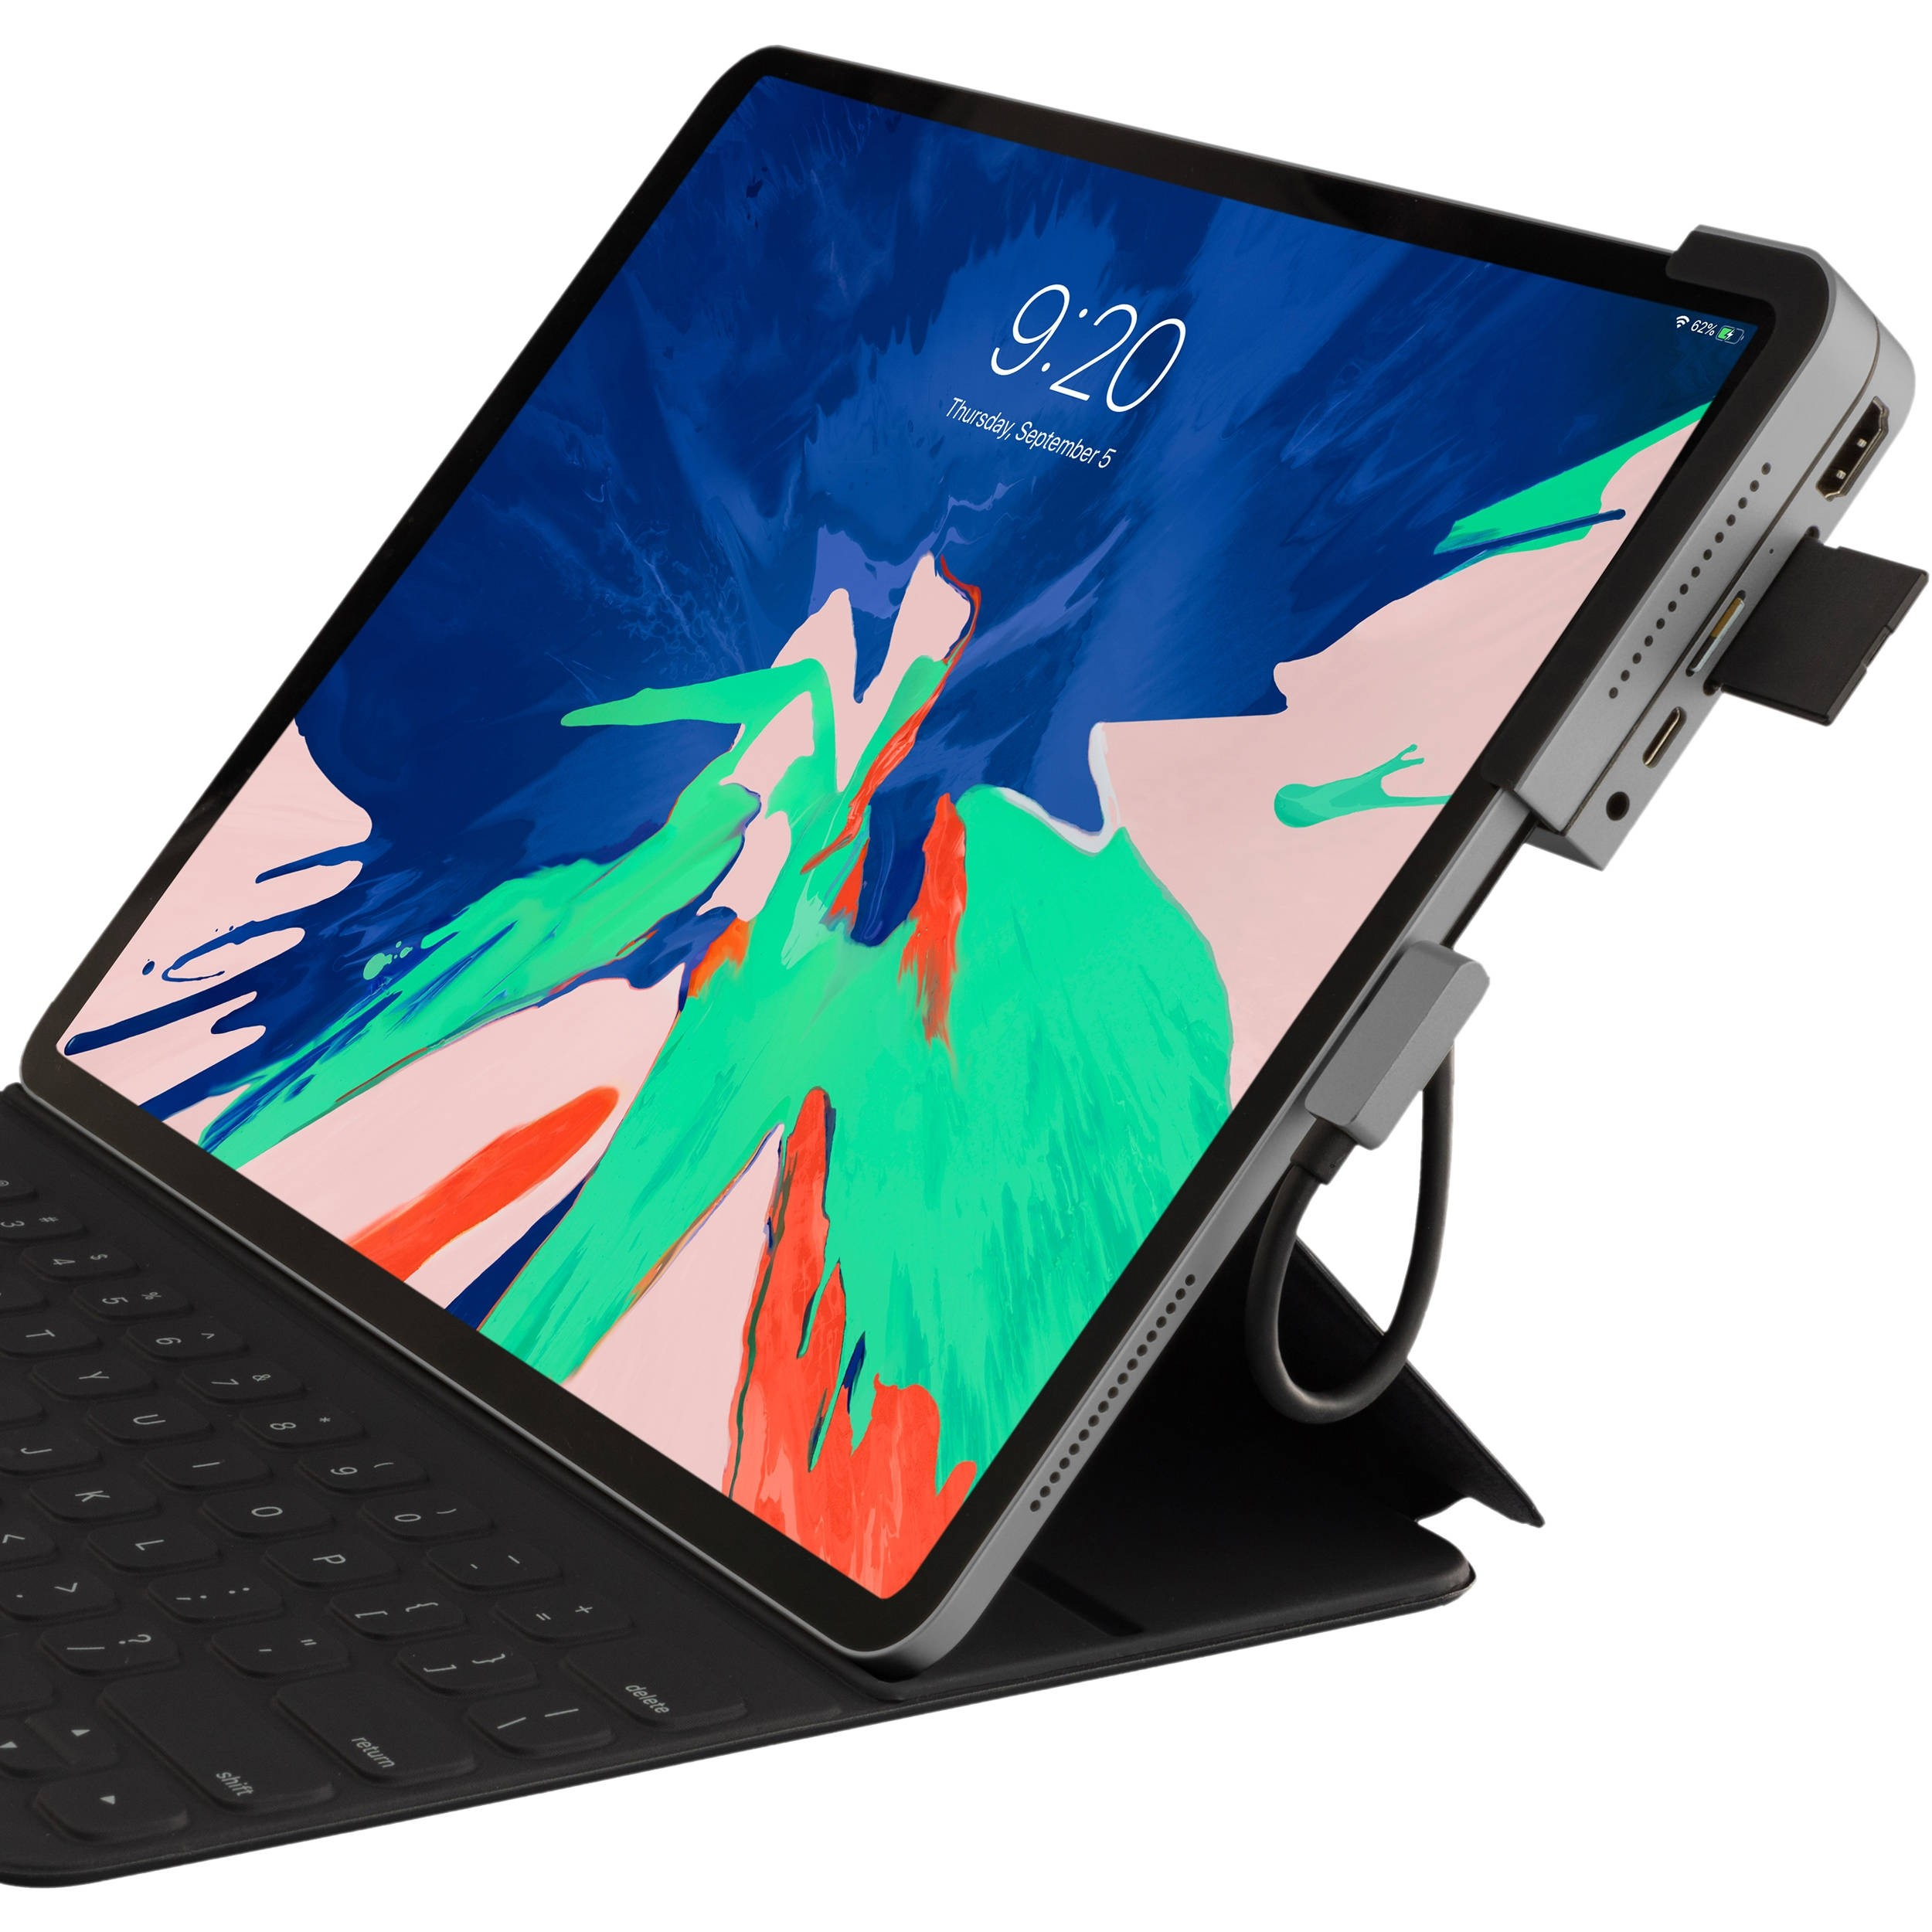 """Xcellon 6-in-1 Multiport USB Type-C Docking Station for 10.9, 11 & 12.9"""" iPad Air and Pro - Space Gray, XCIPPD6SG"""